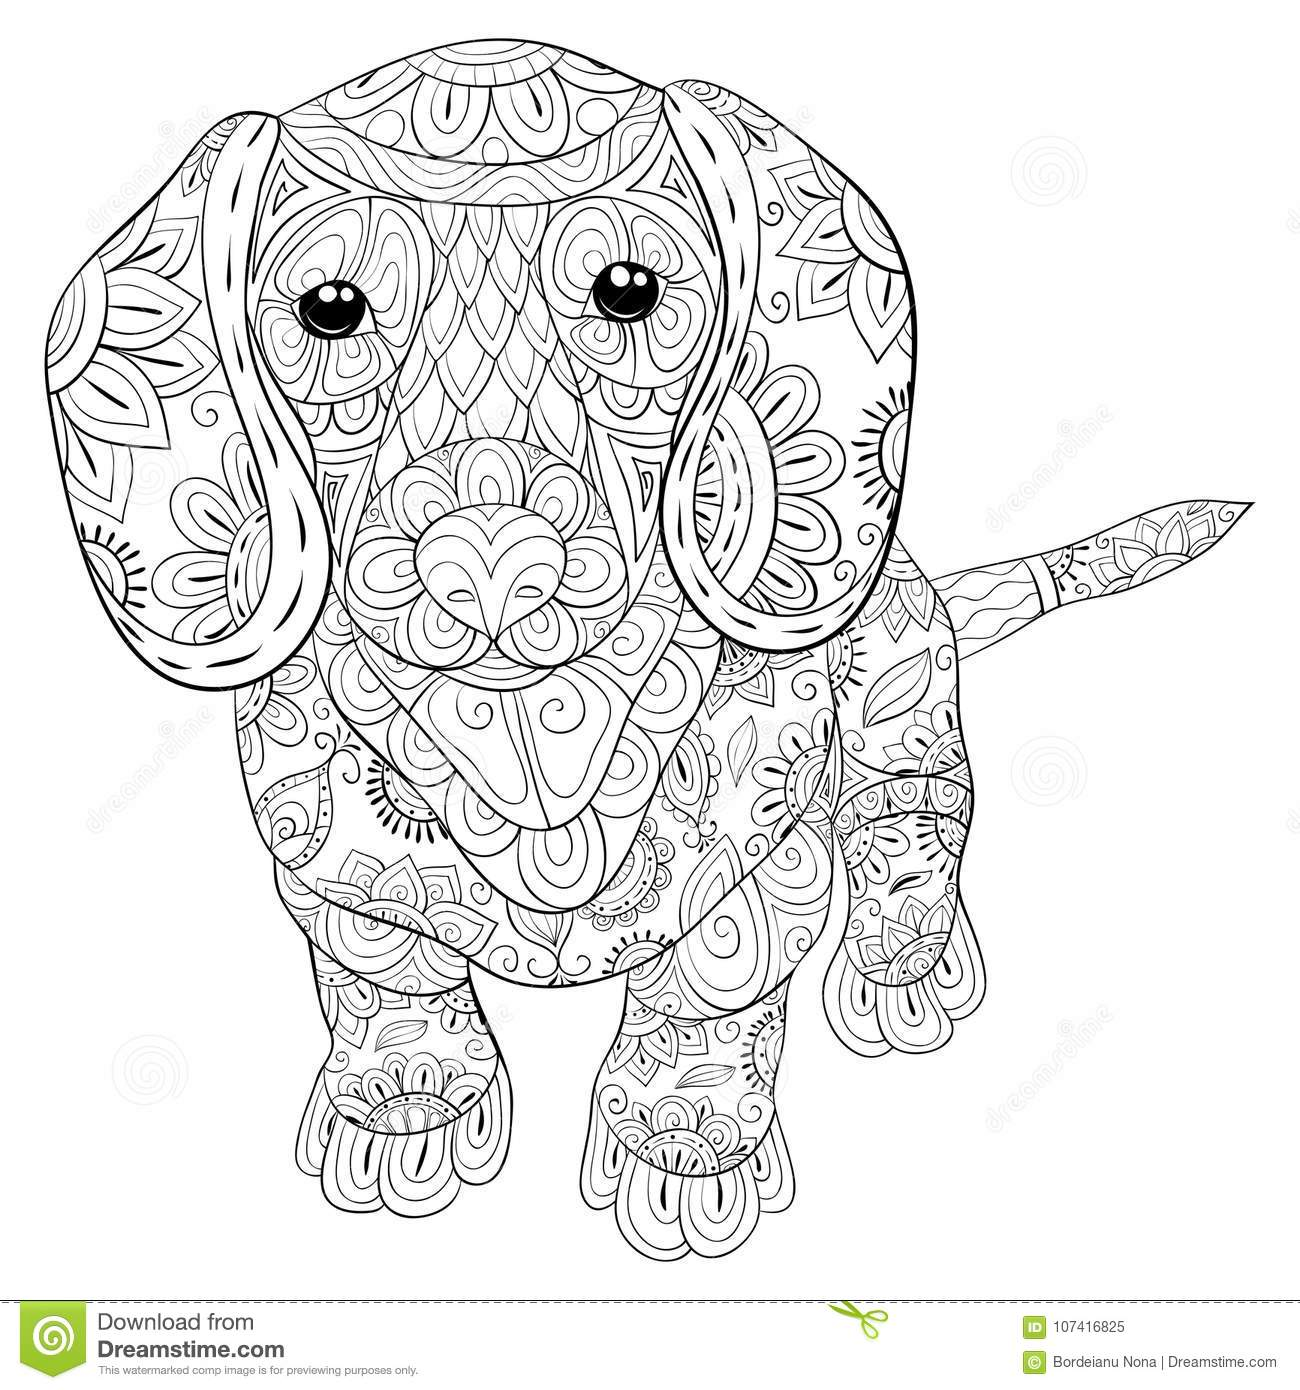 Adult Coloring Page A Cute Isolated Dog For Relaxing Zen Art